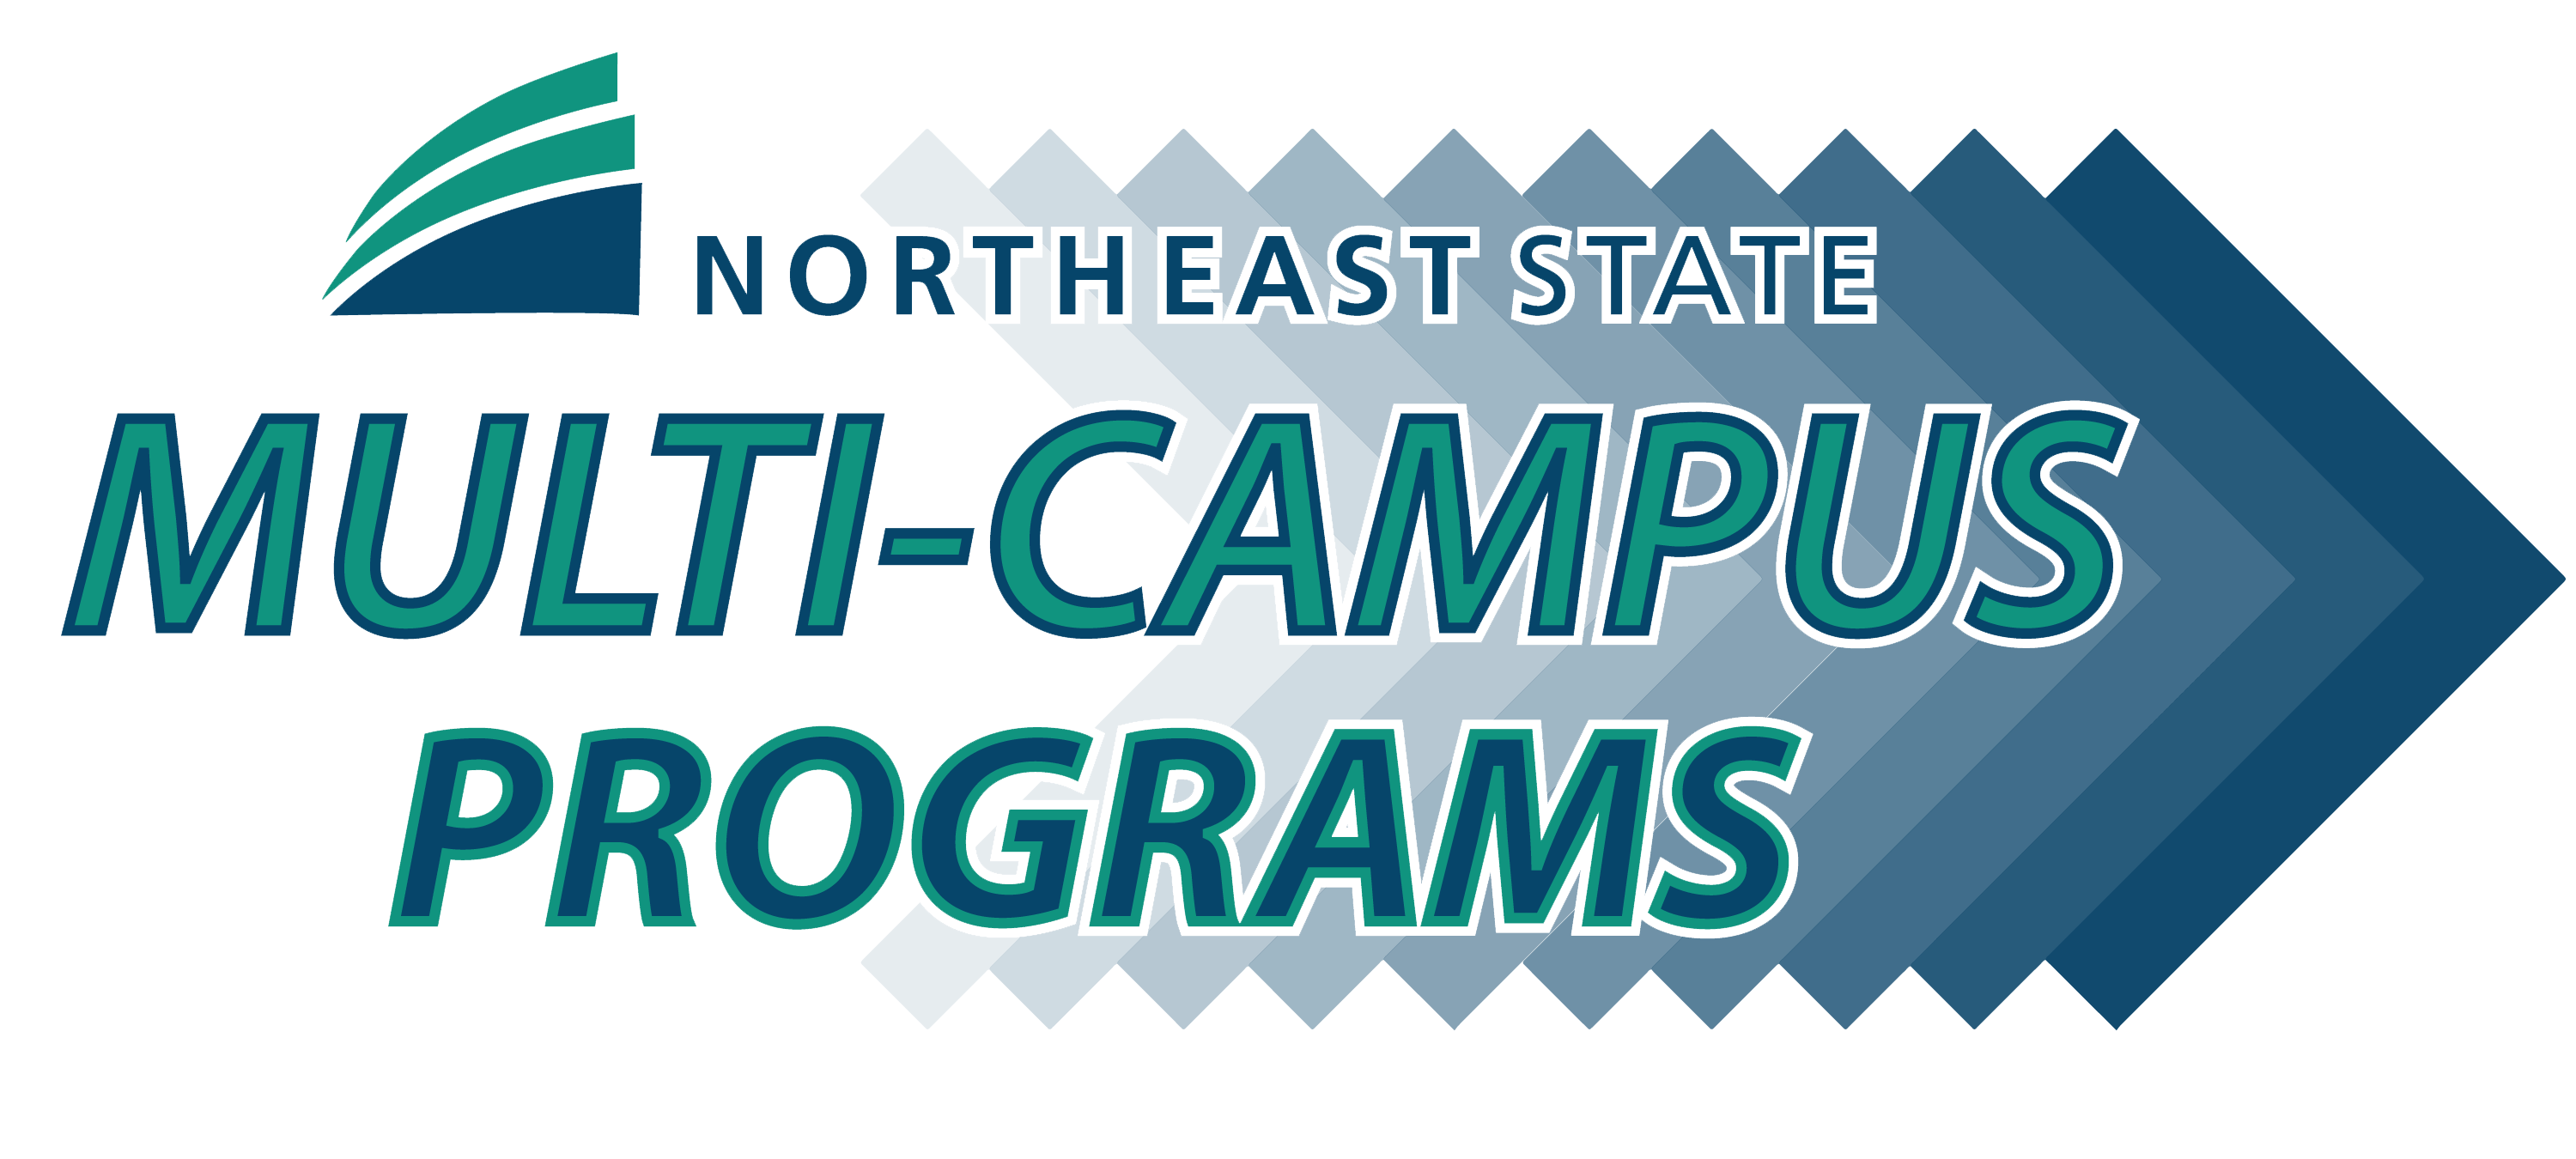 Multi-Campus Programs